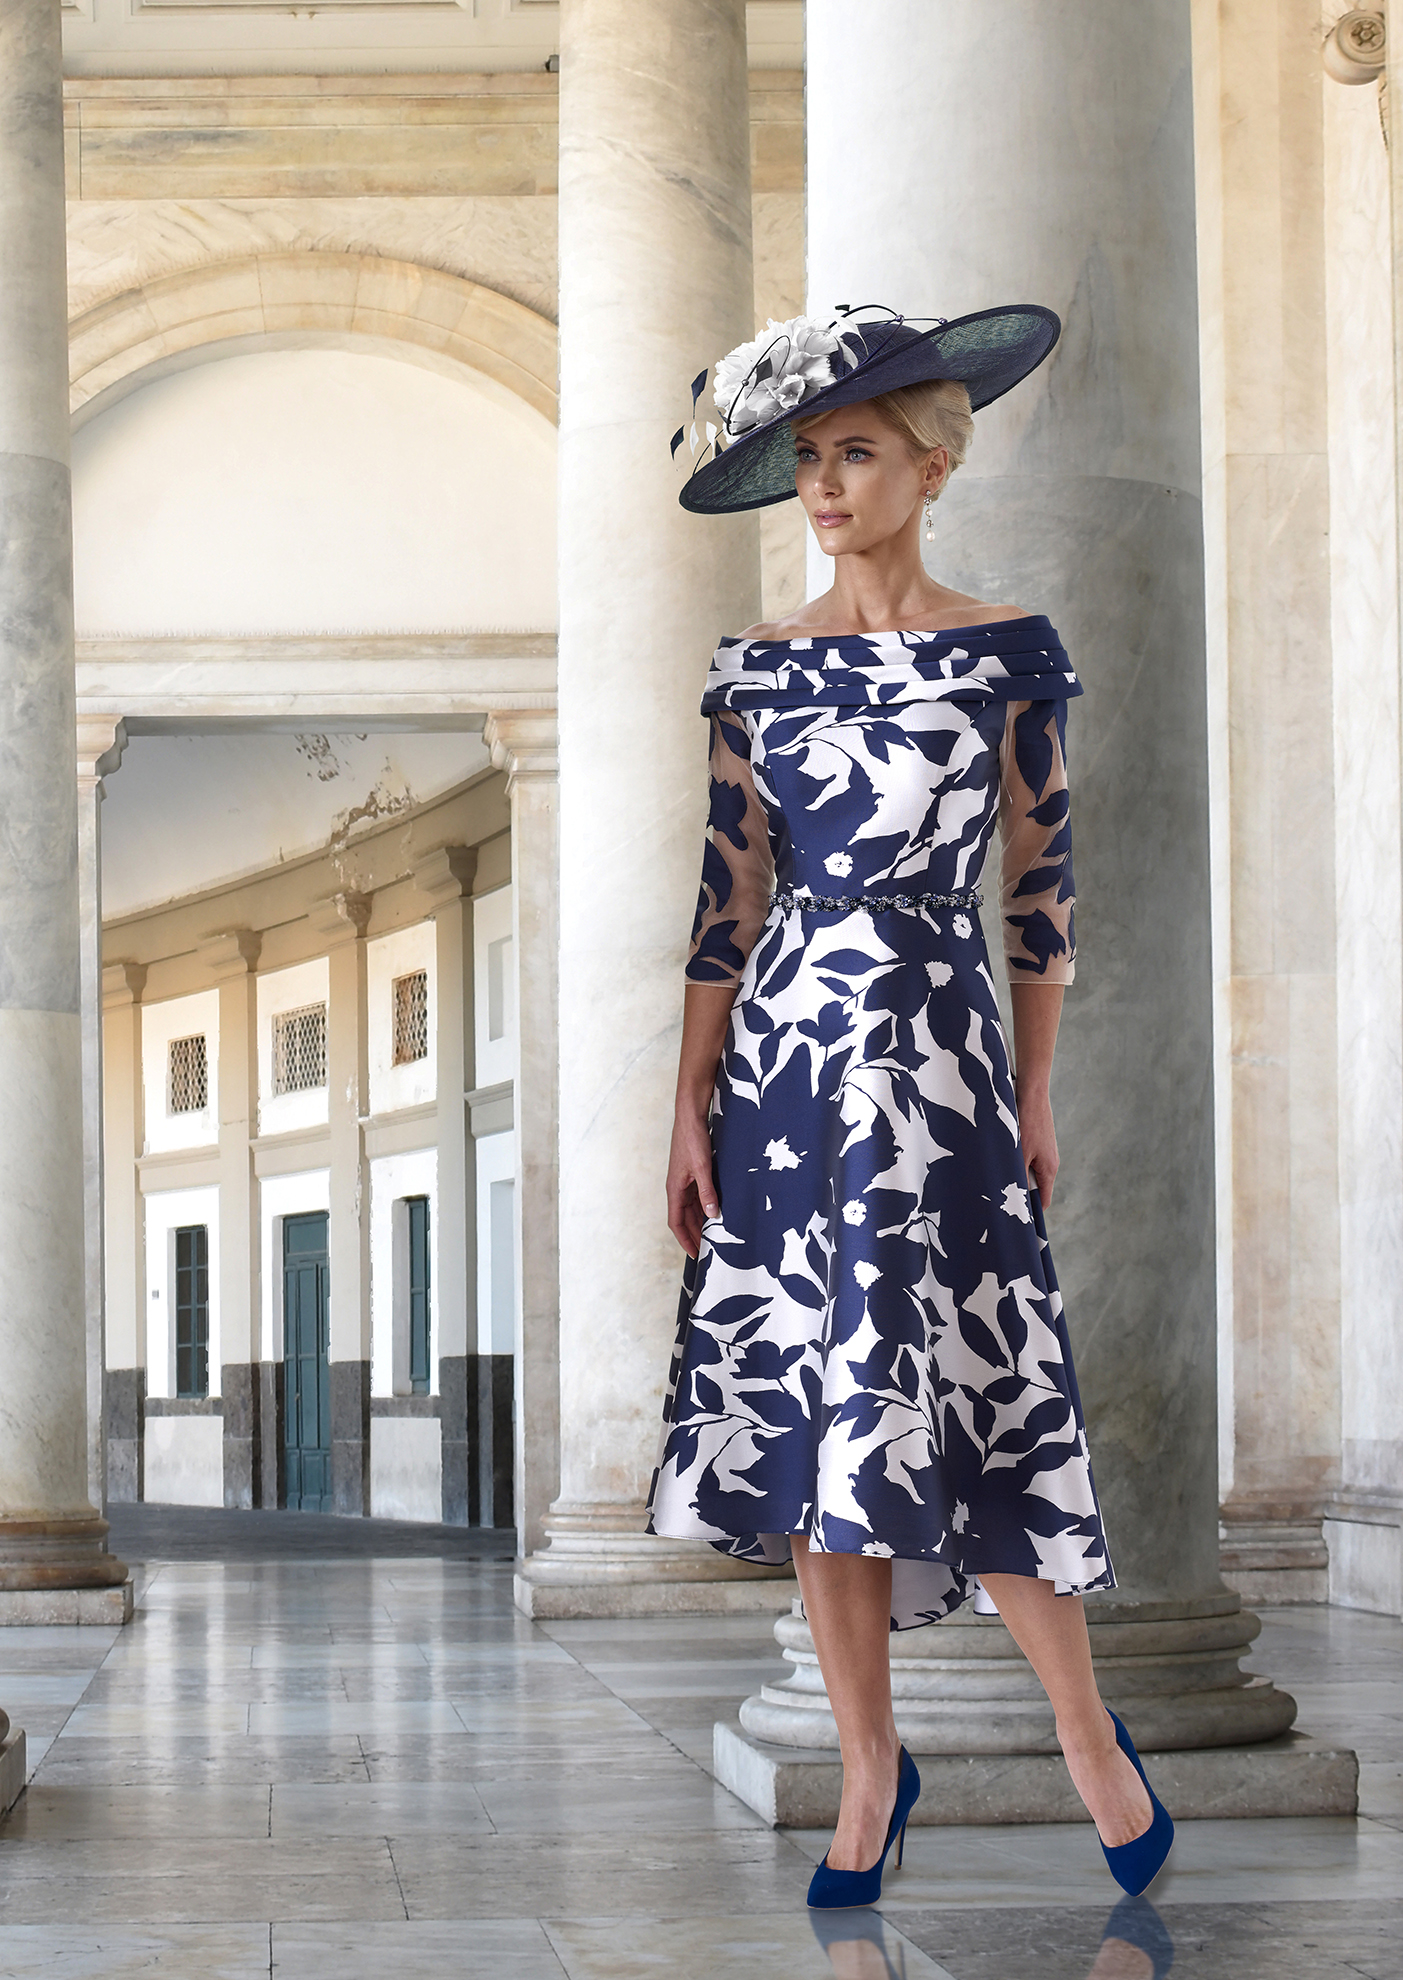 Irresistible 2020 Marianne Fashions Mother Of The Bride